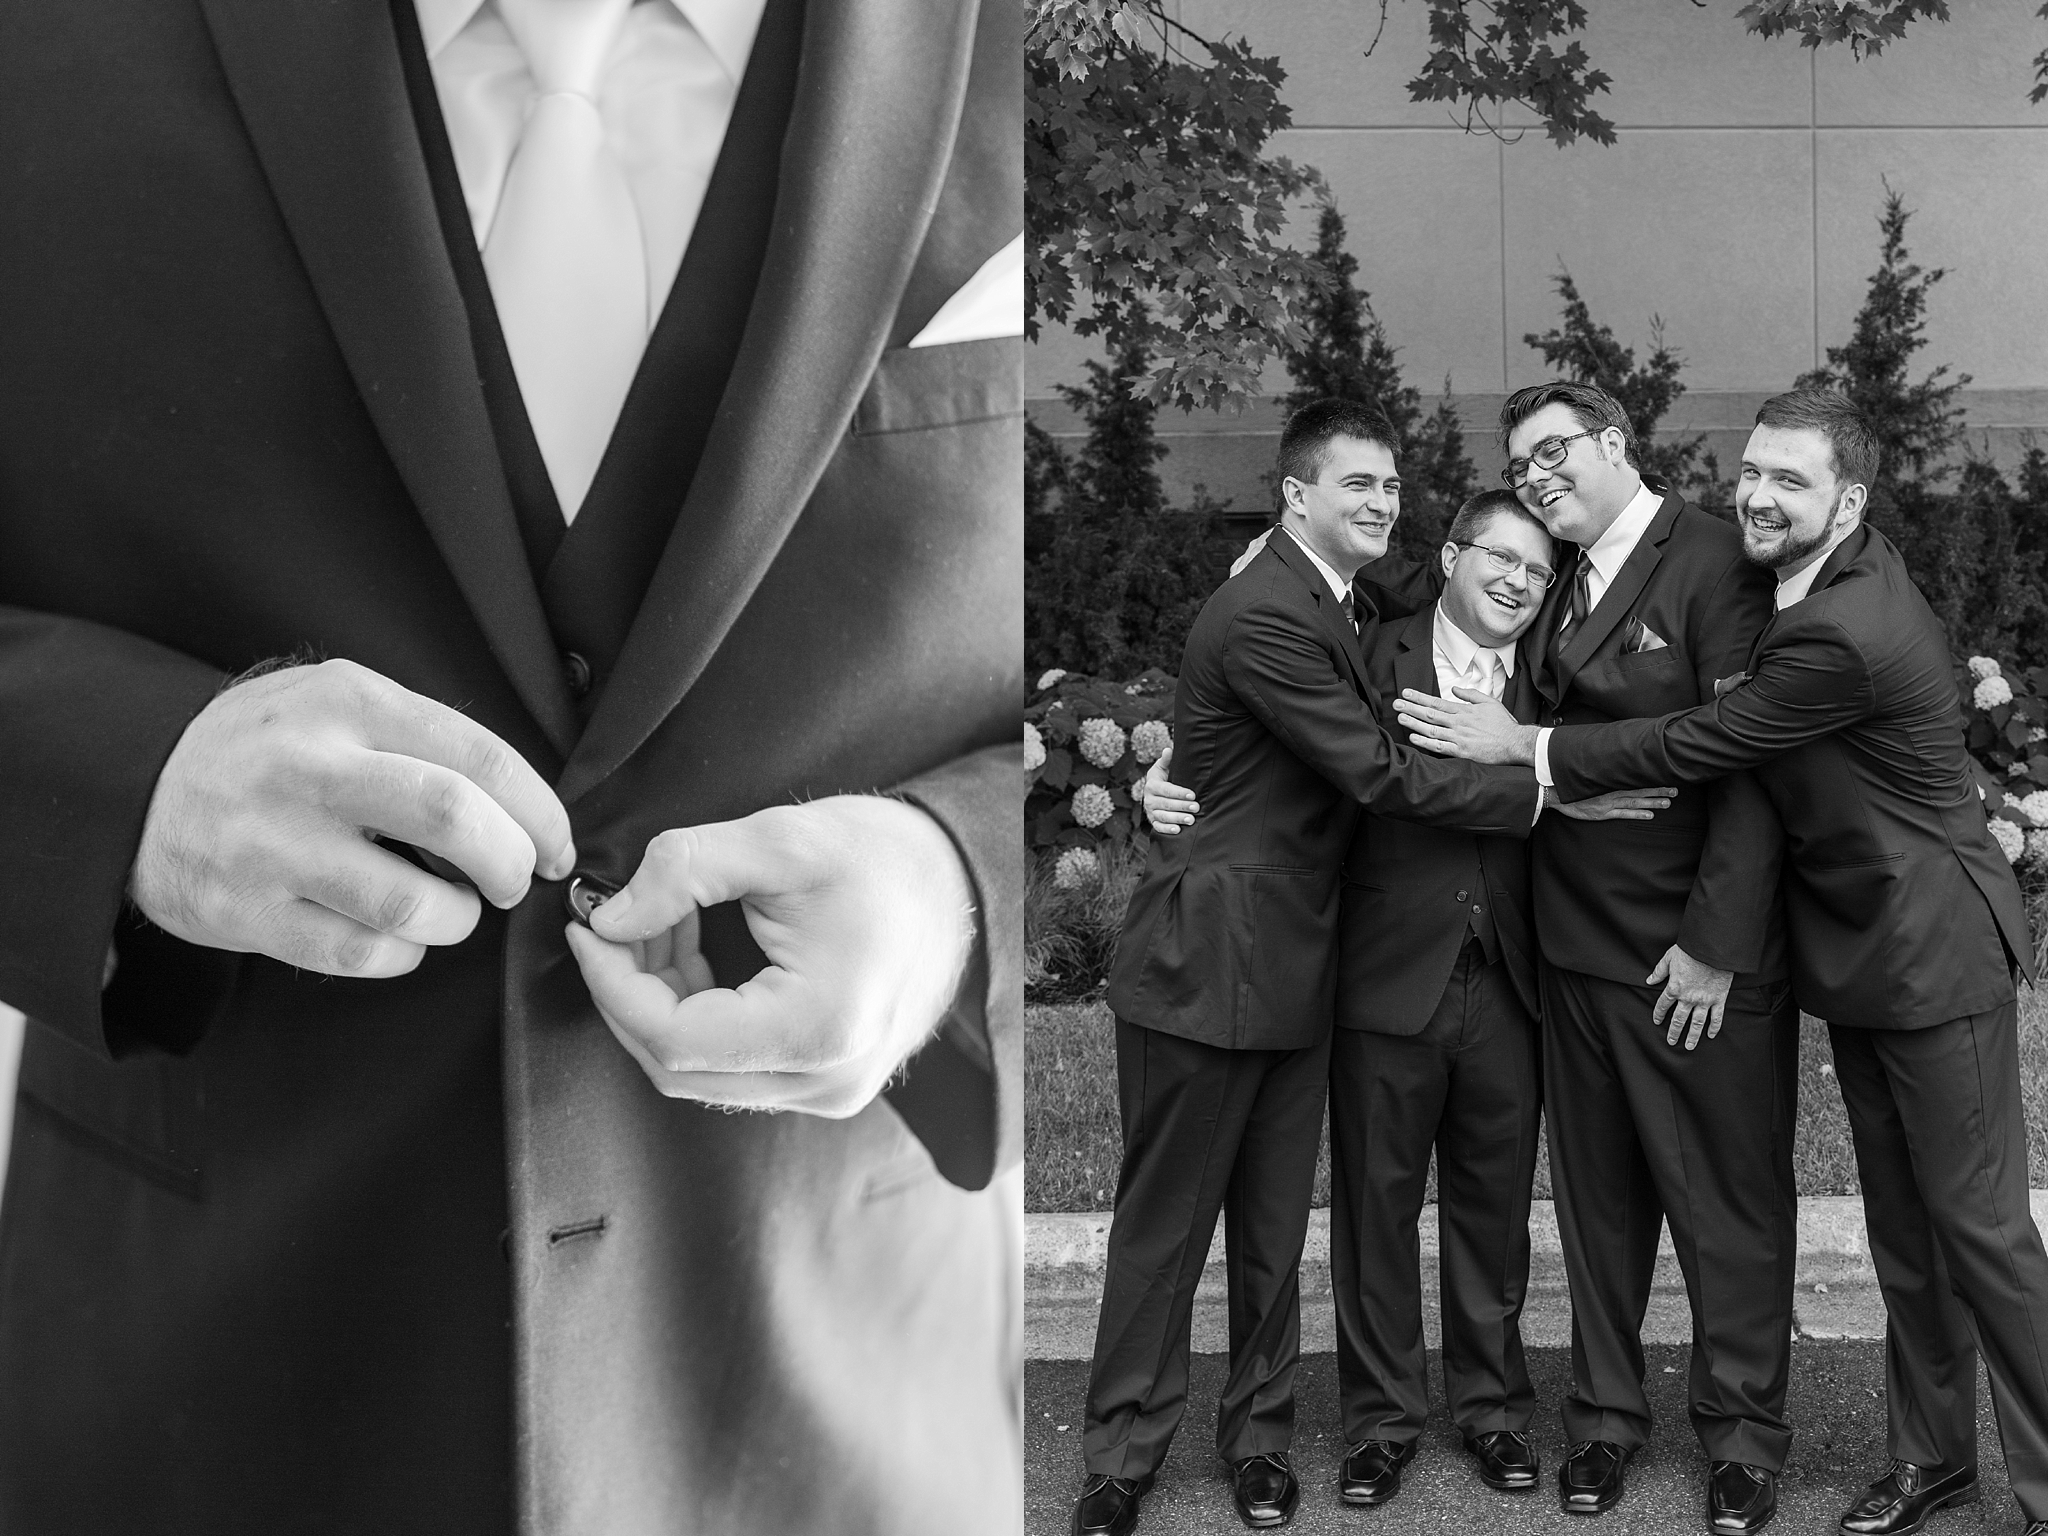 romantic-artful-candid-wedding-photos-in-detroit-lansing-ann-arbor-northern-michigan-and-chicago-by-courtney-carolyn-photography_0043.jpg